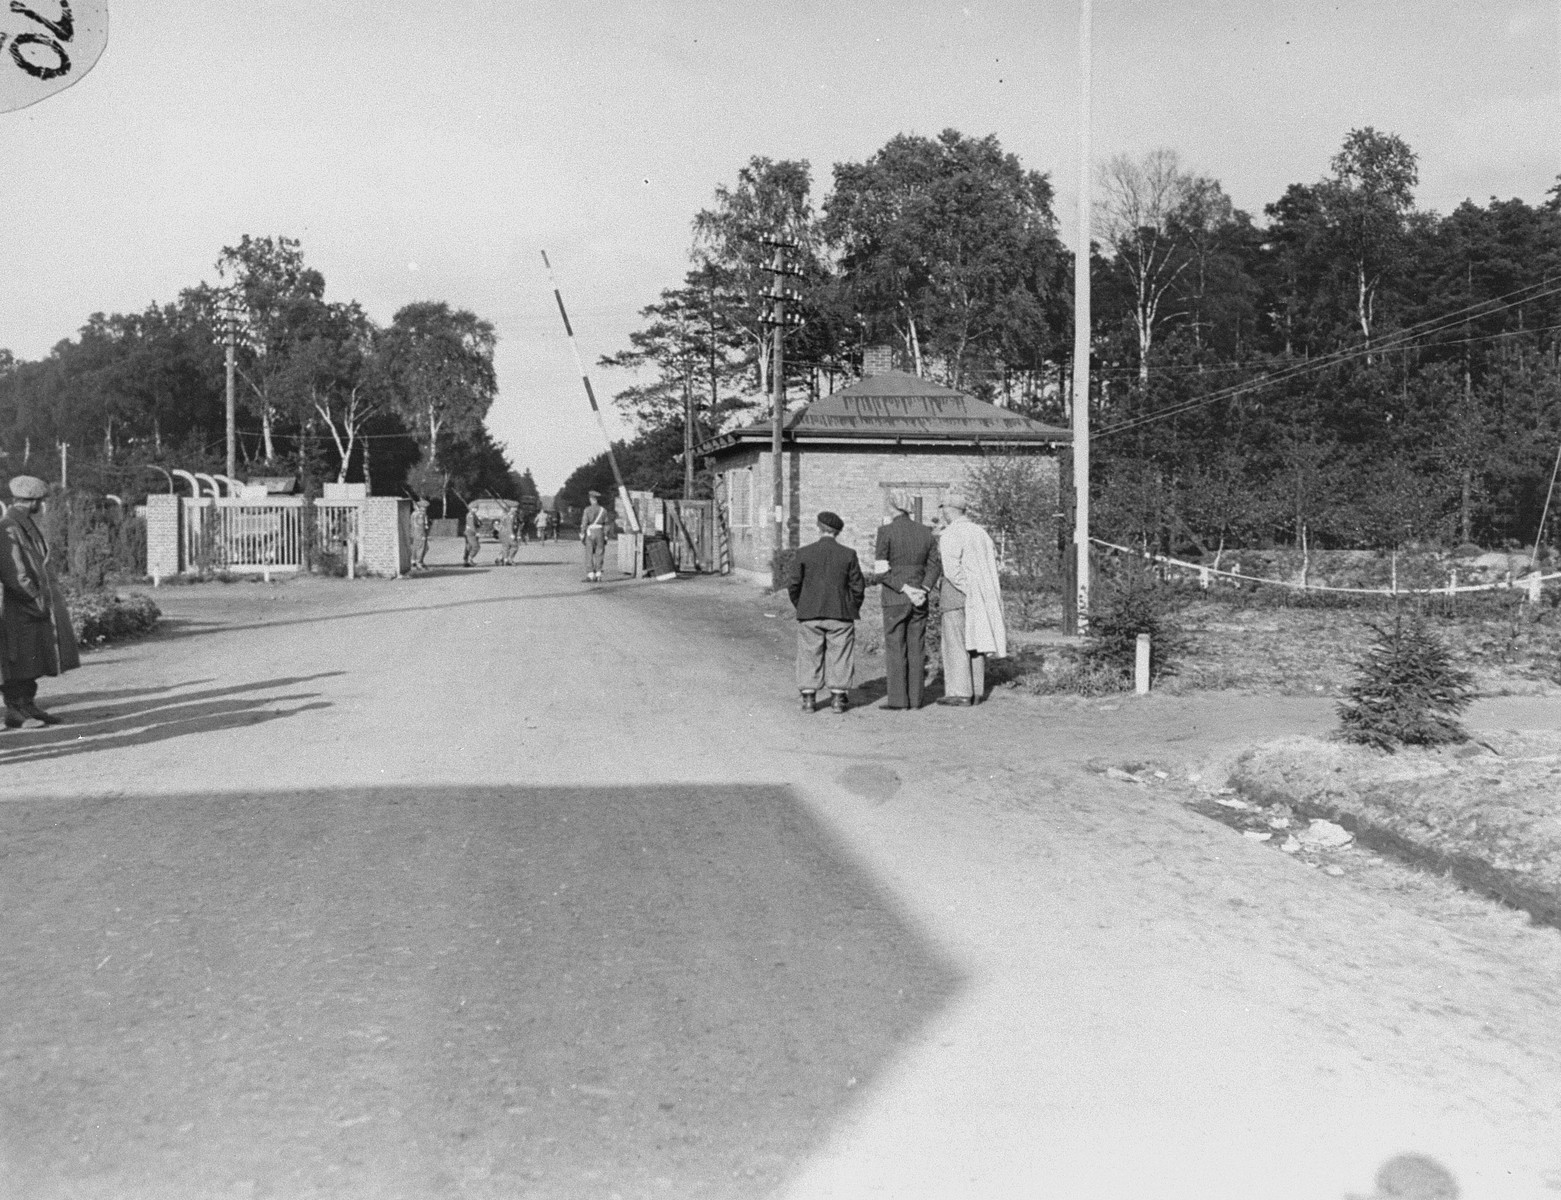 Survivors on the street in Bergen-Belsen facing the main gate to the camp.